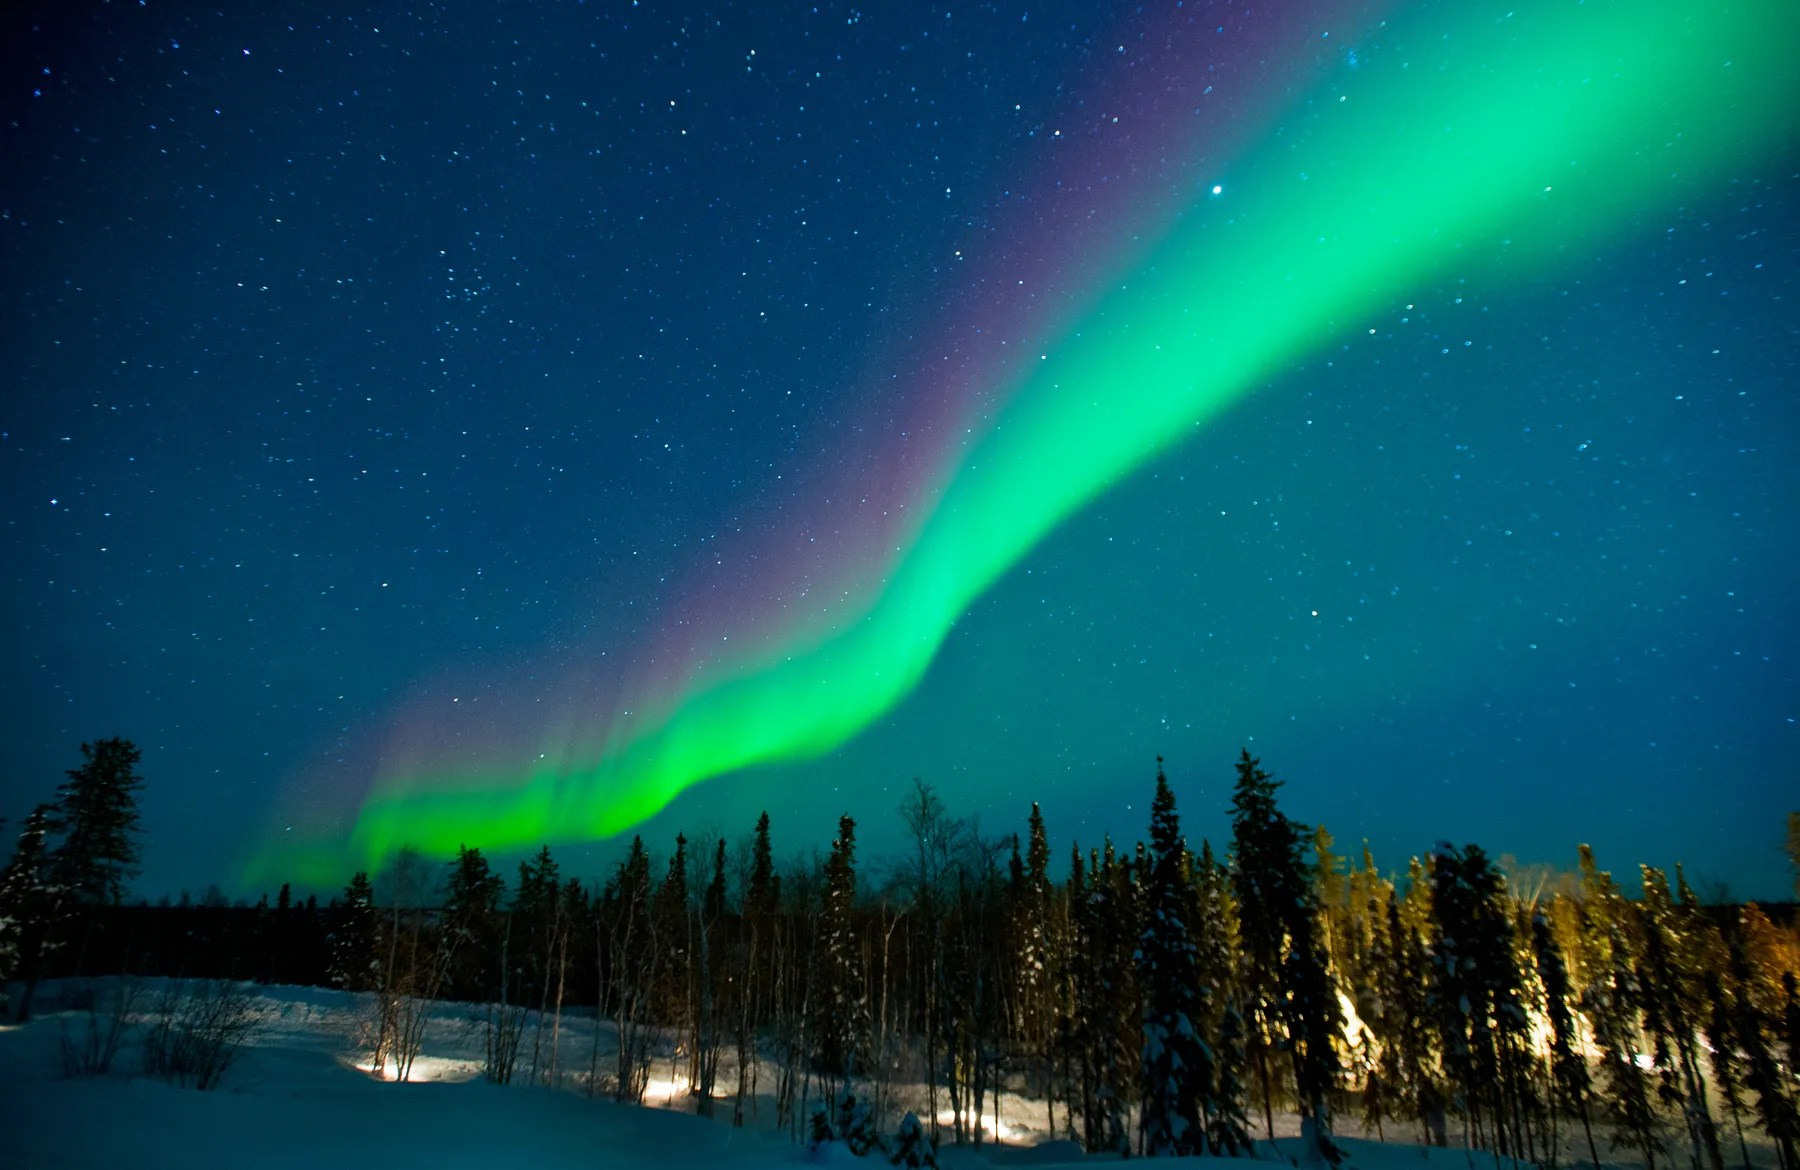 Rainbow Northern Lights in Yellowknife, Canada